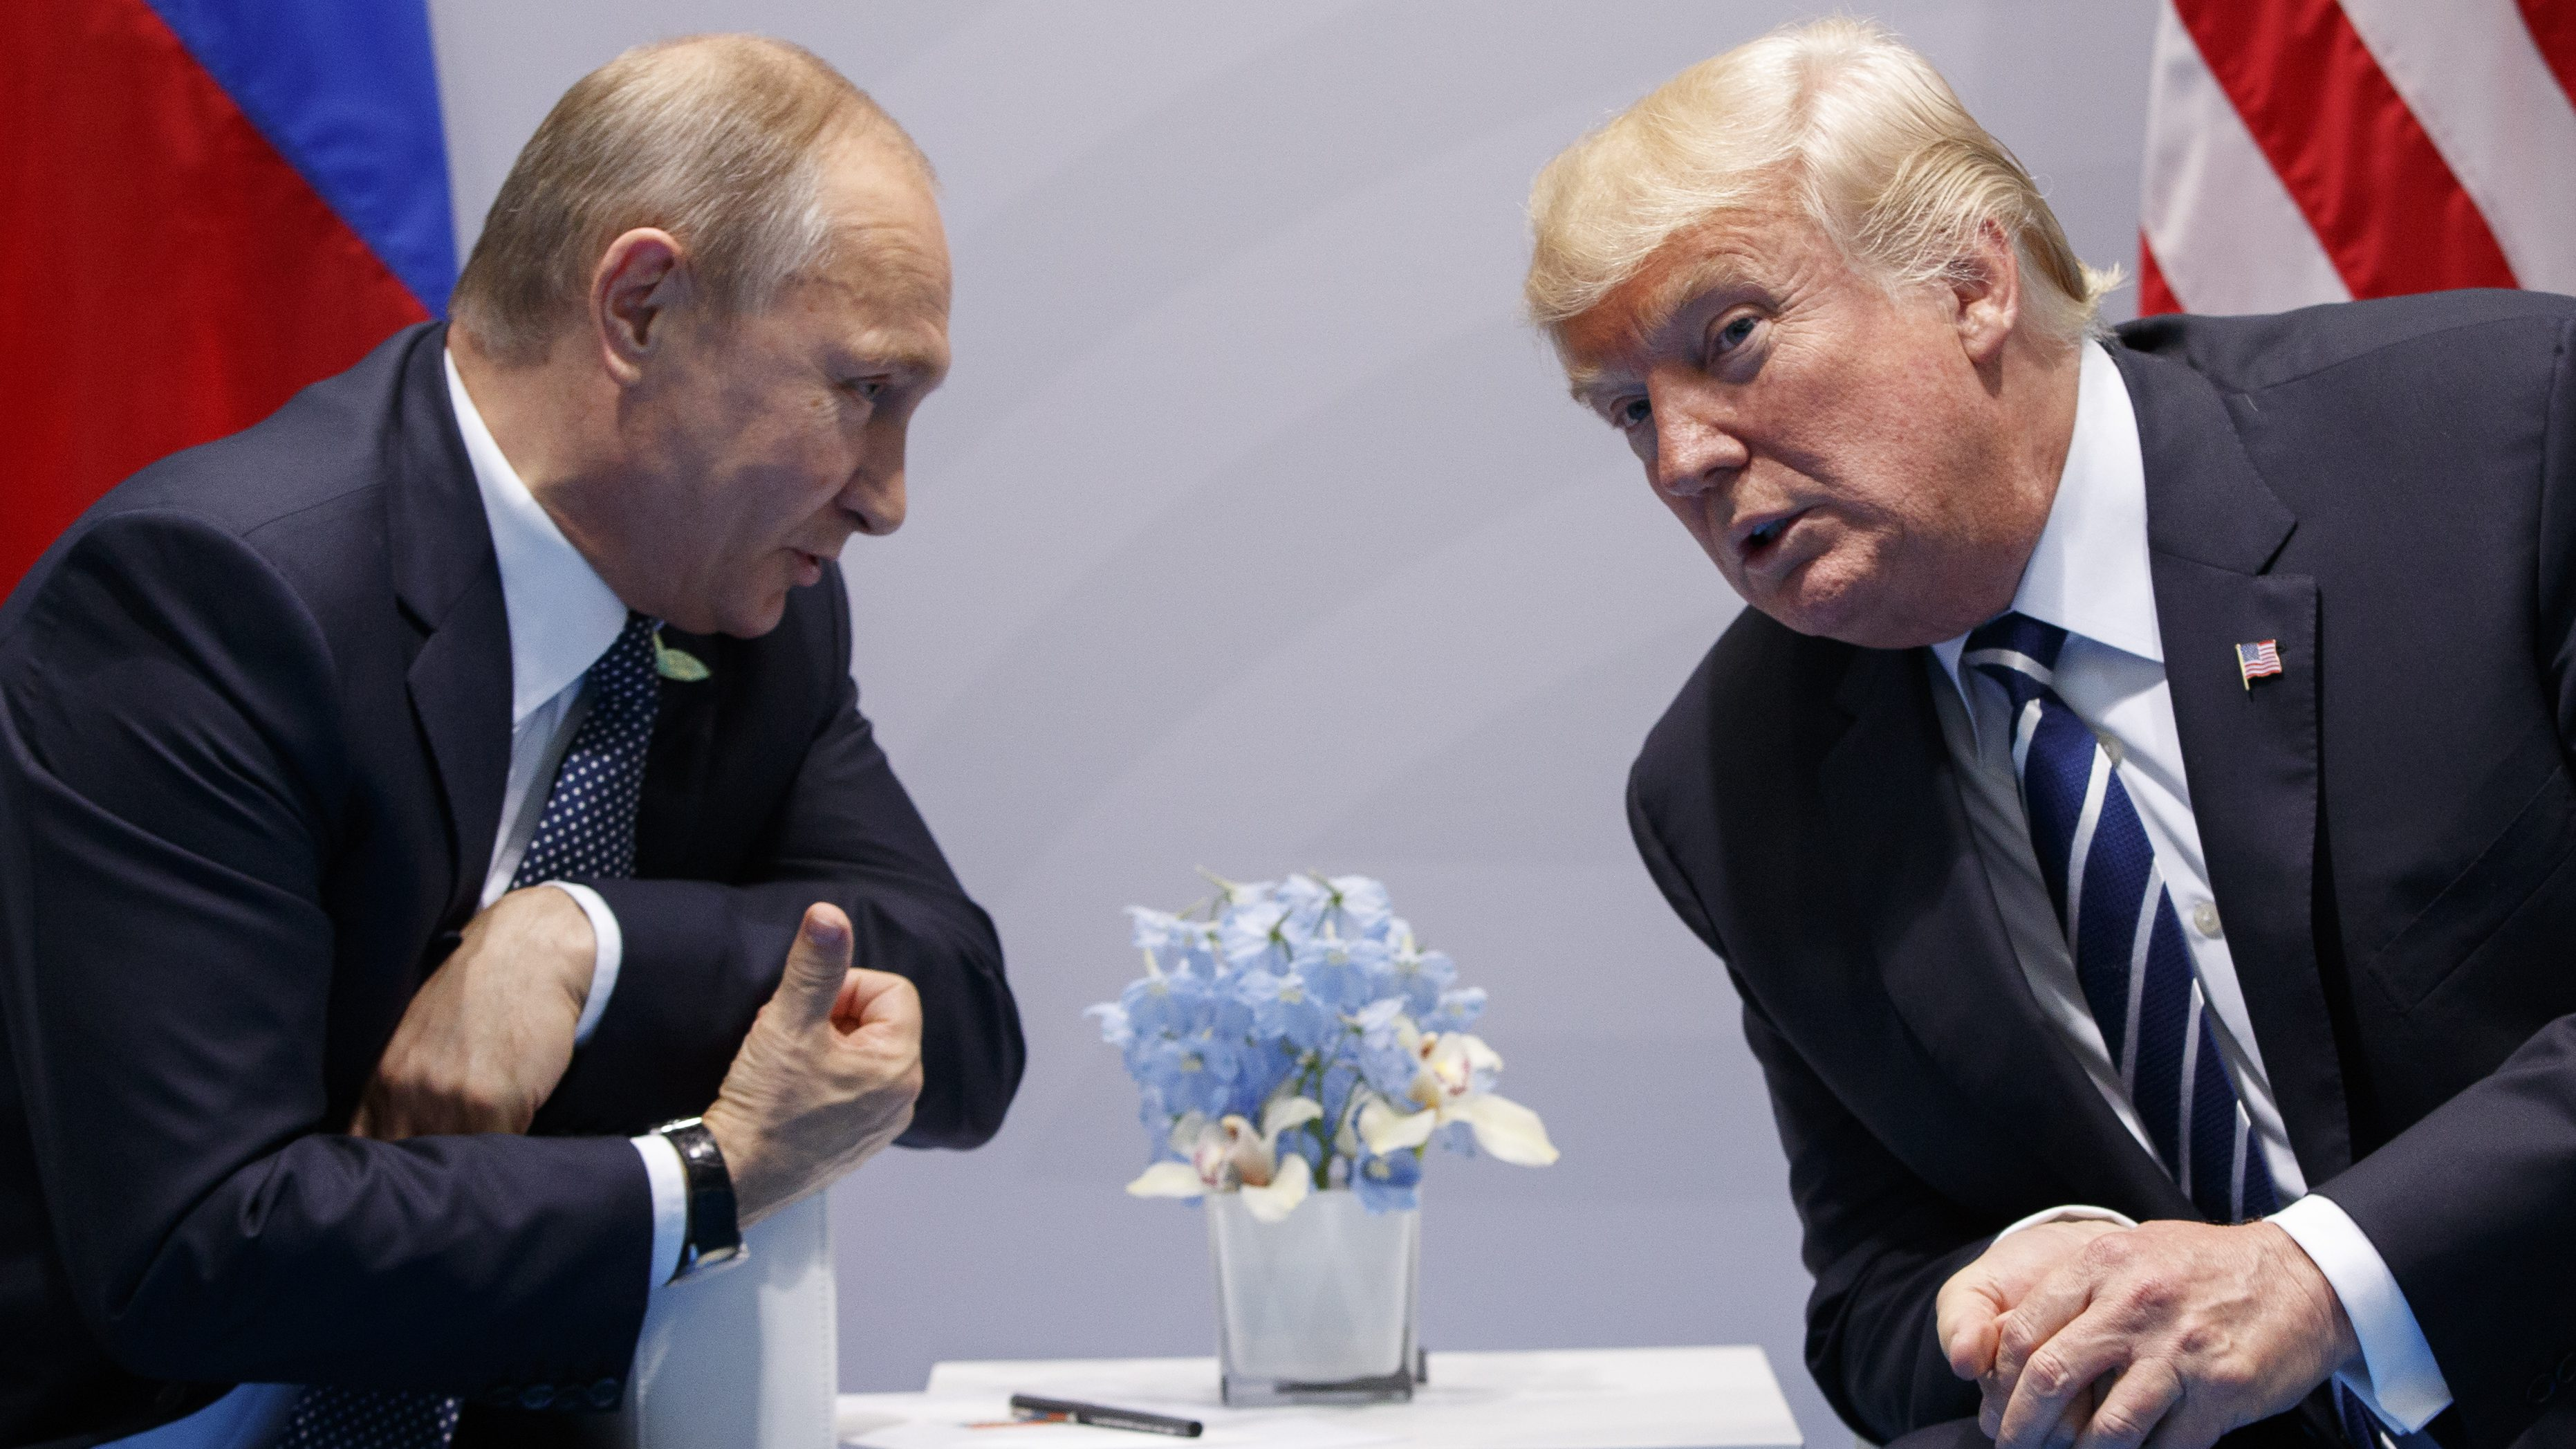 2017 AP YEAR END PHOTOS - U.S. President Donald Trump meets with Russian President Vladimir Putin at the G-20 Summit on July 7, 2017, in Hamburg. Trump and Putin met for more than two hours. (AP Photo/Evan Vucci)